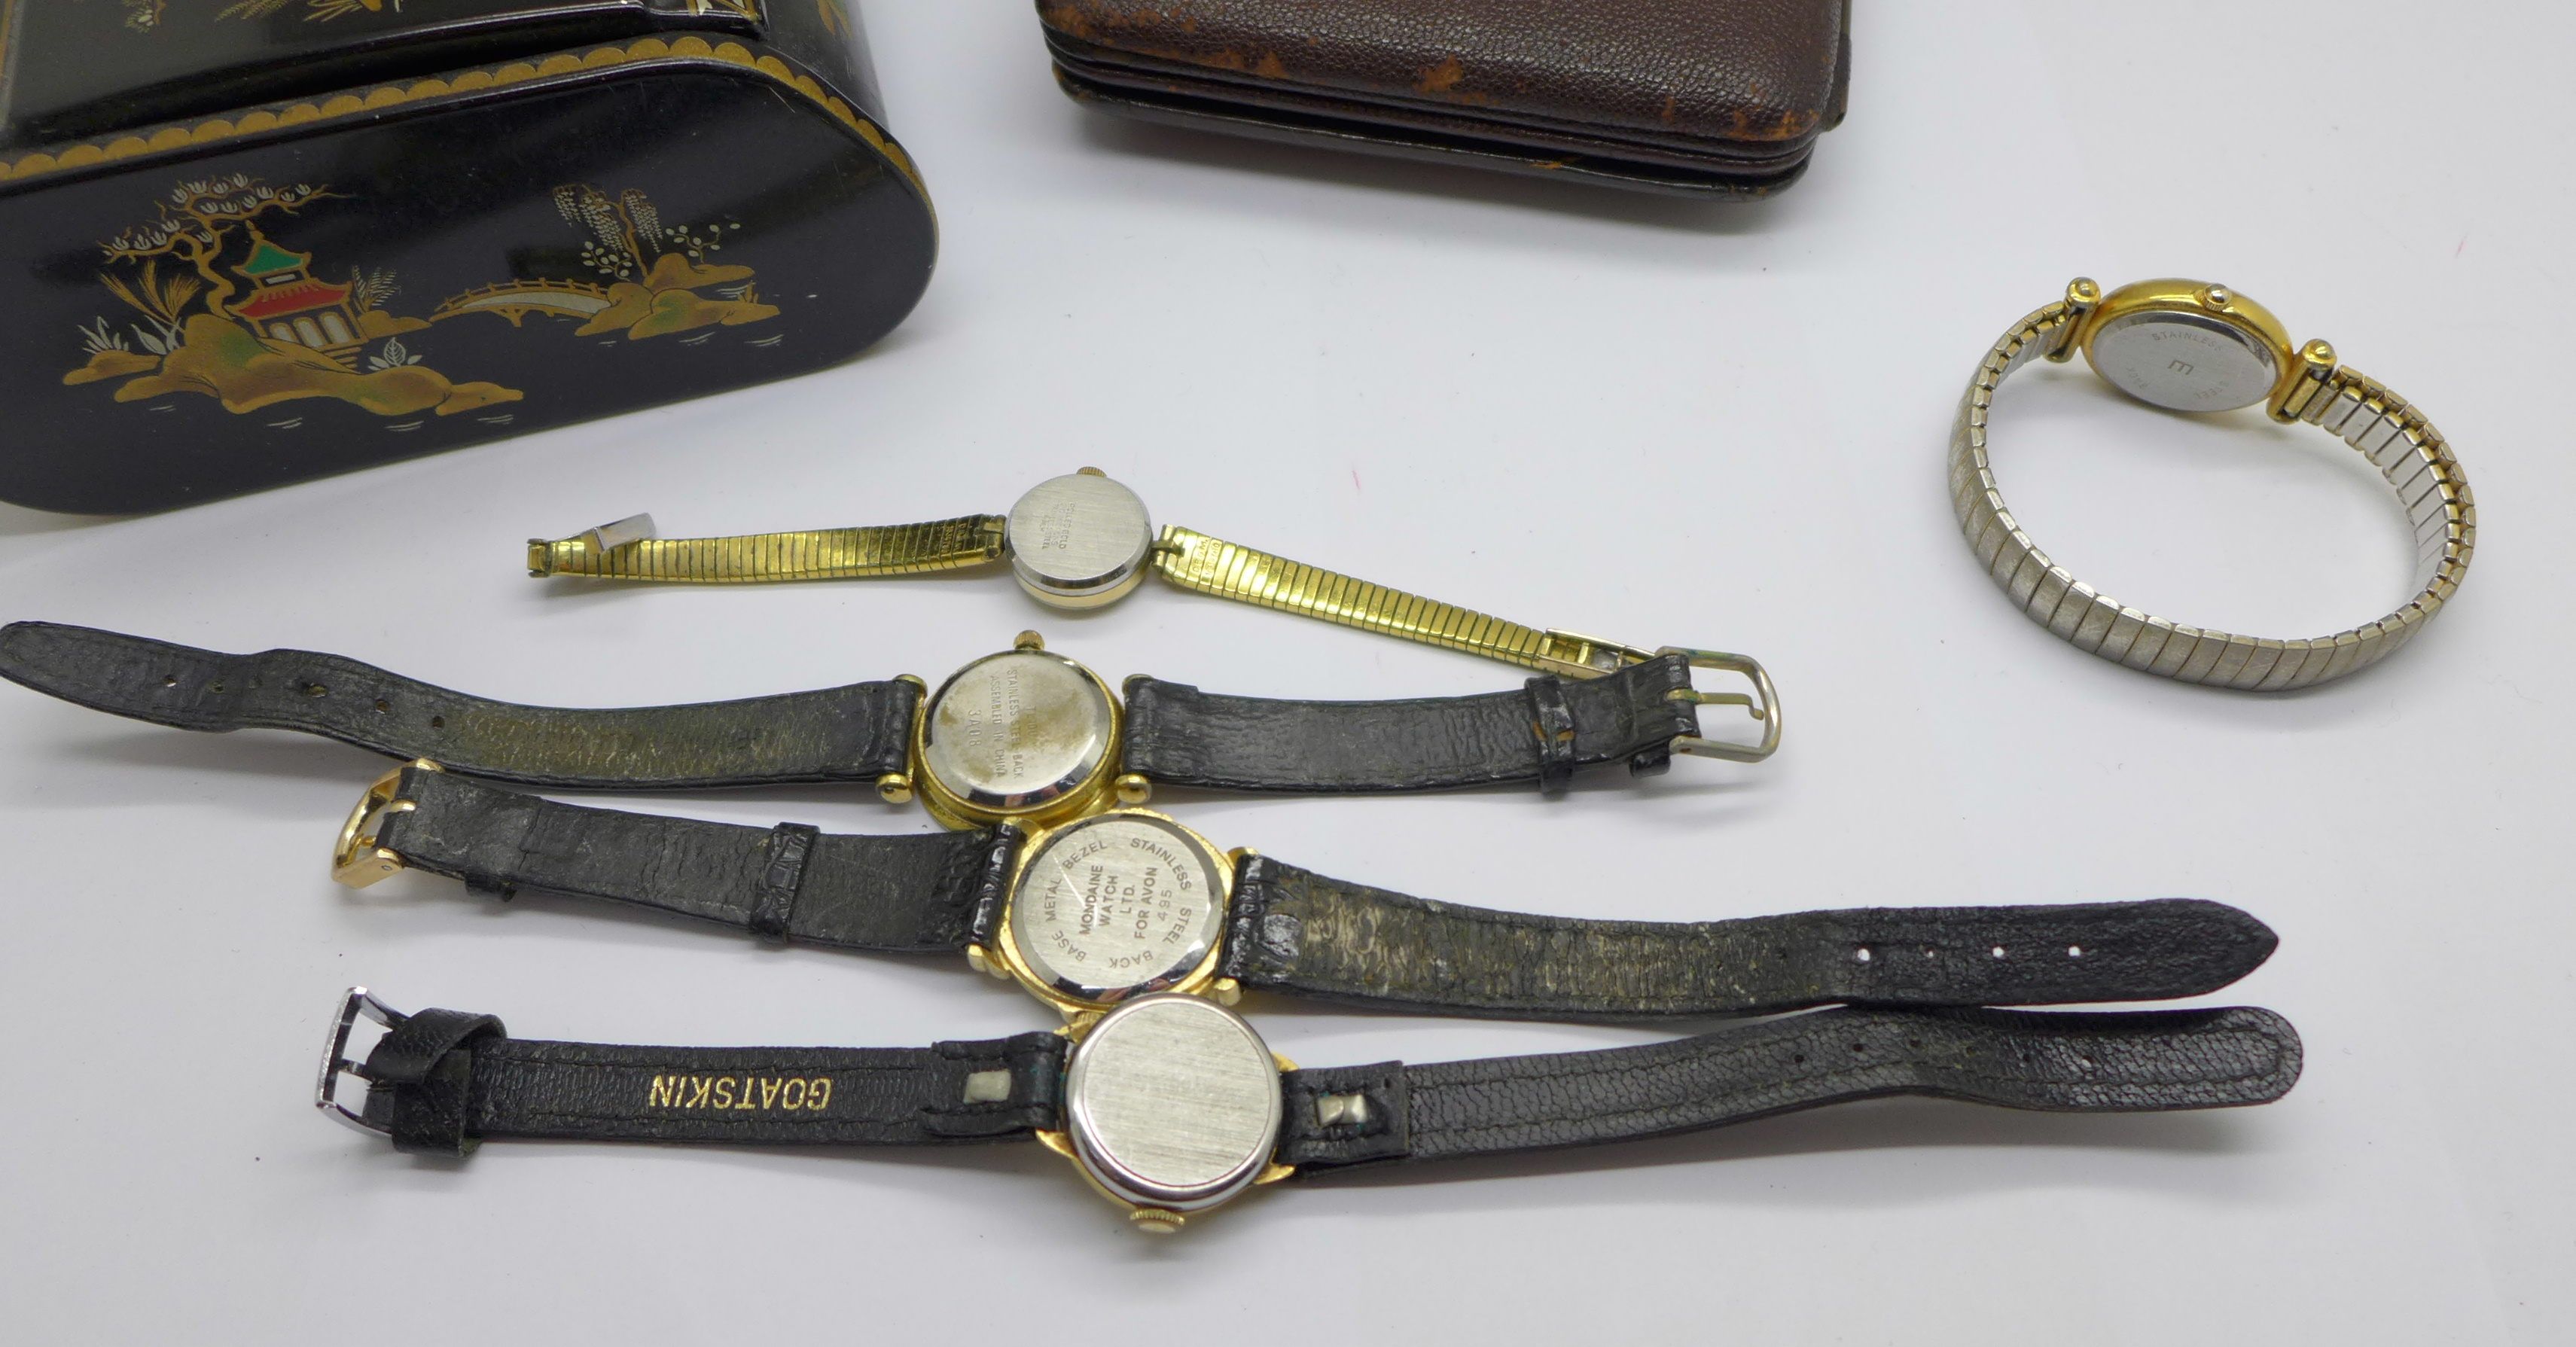 Five lady's wristwatches, a Kienzle travel clock and a trinket box - Image 9 of 9